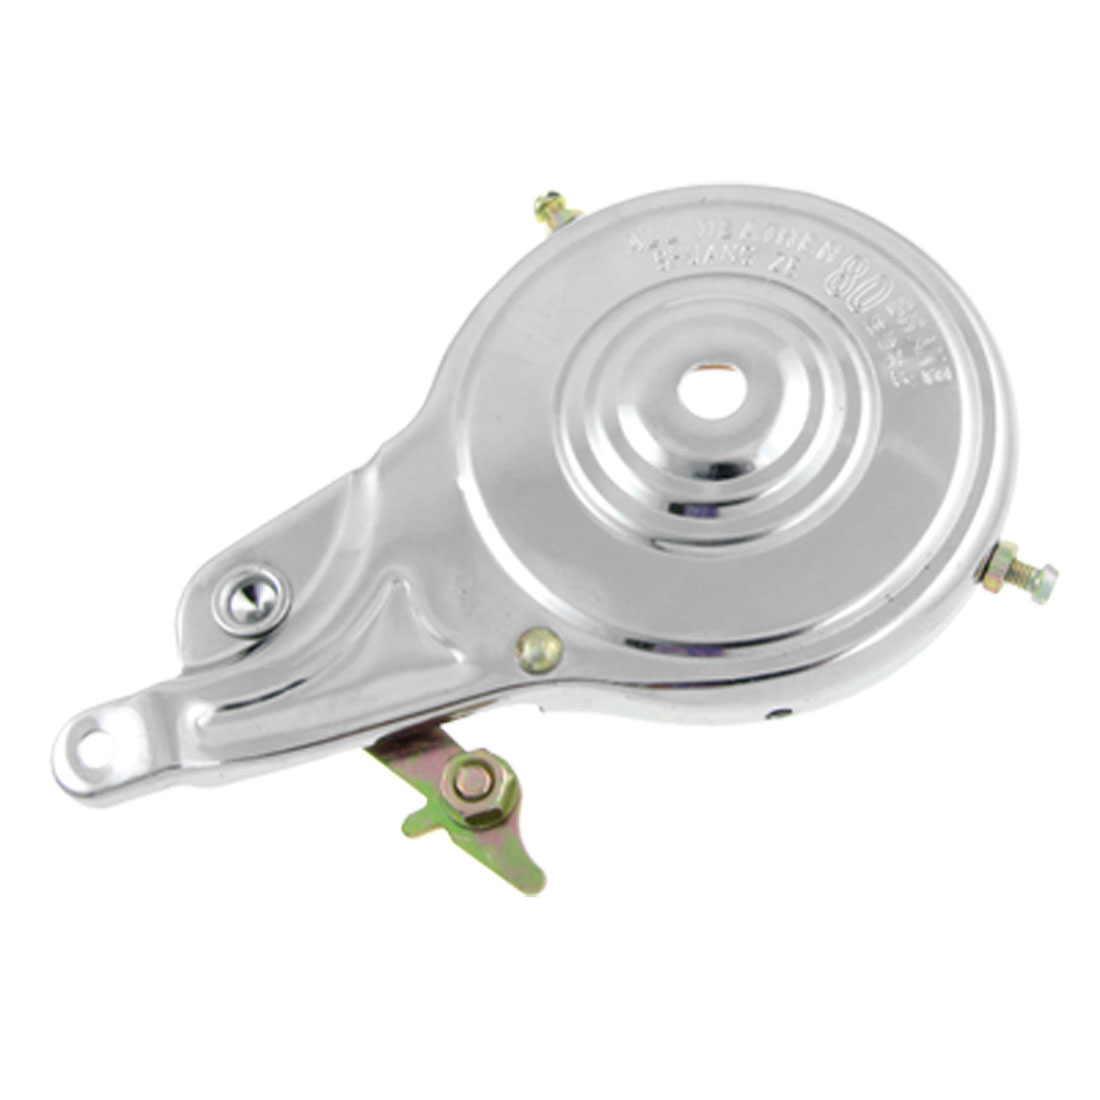 Replacement Electric Scooters Bike 9.5cm Diameter Rear Wheel Brake Drum